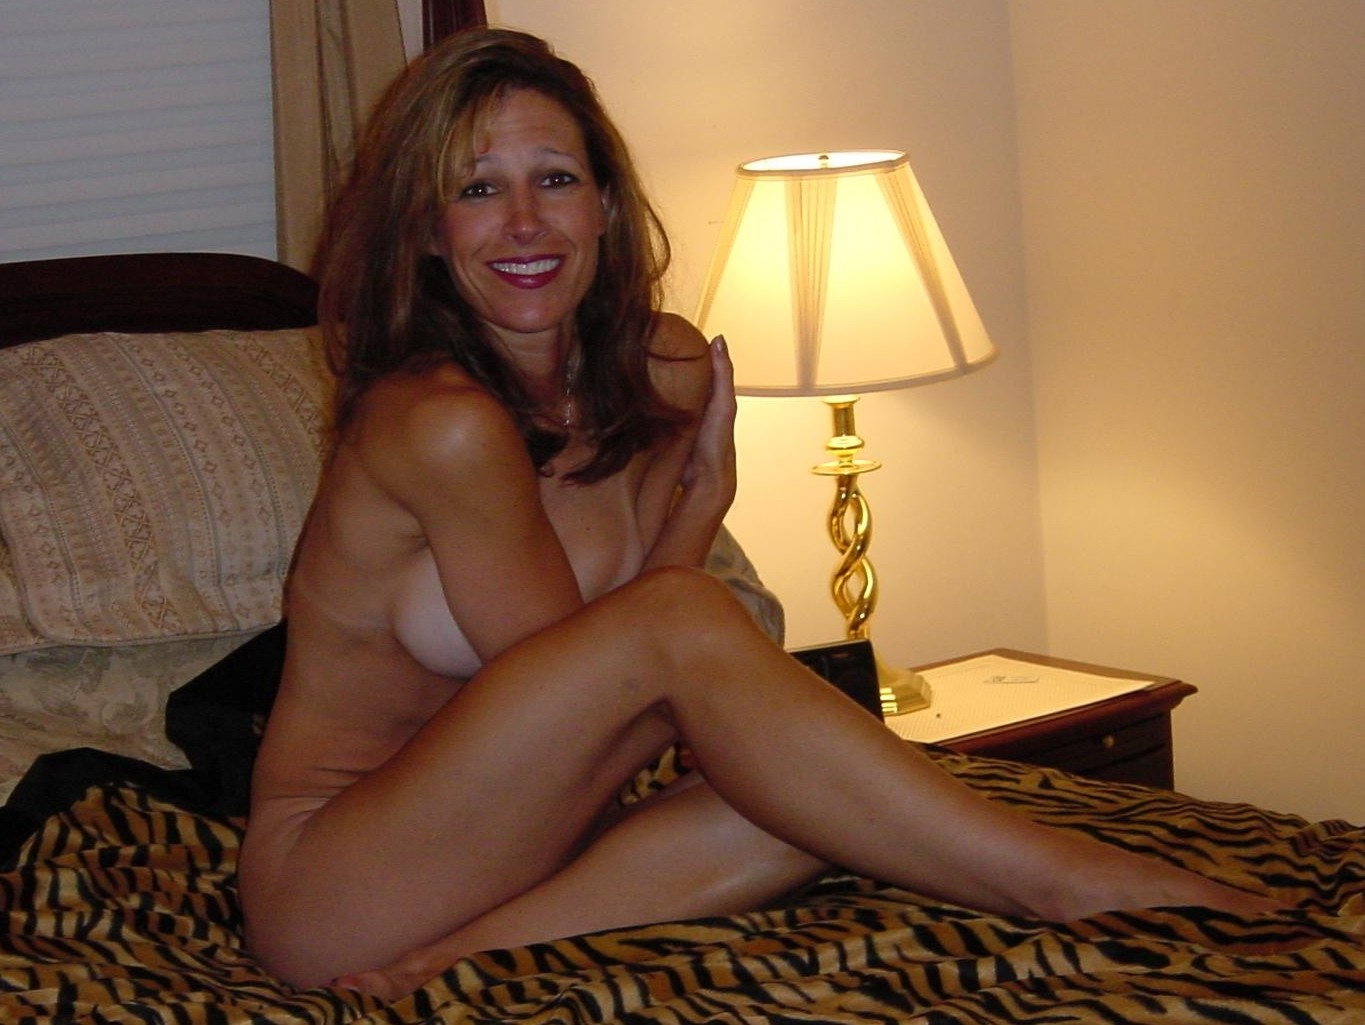 Amateur milf model vids